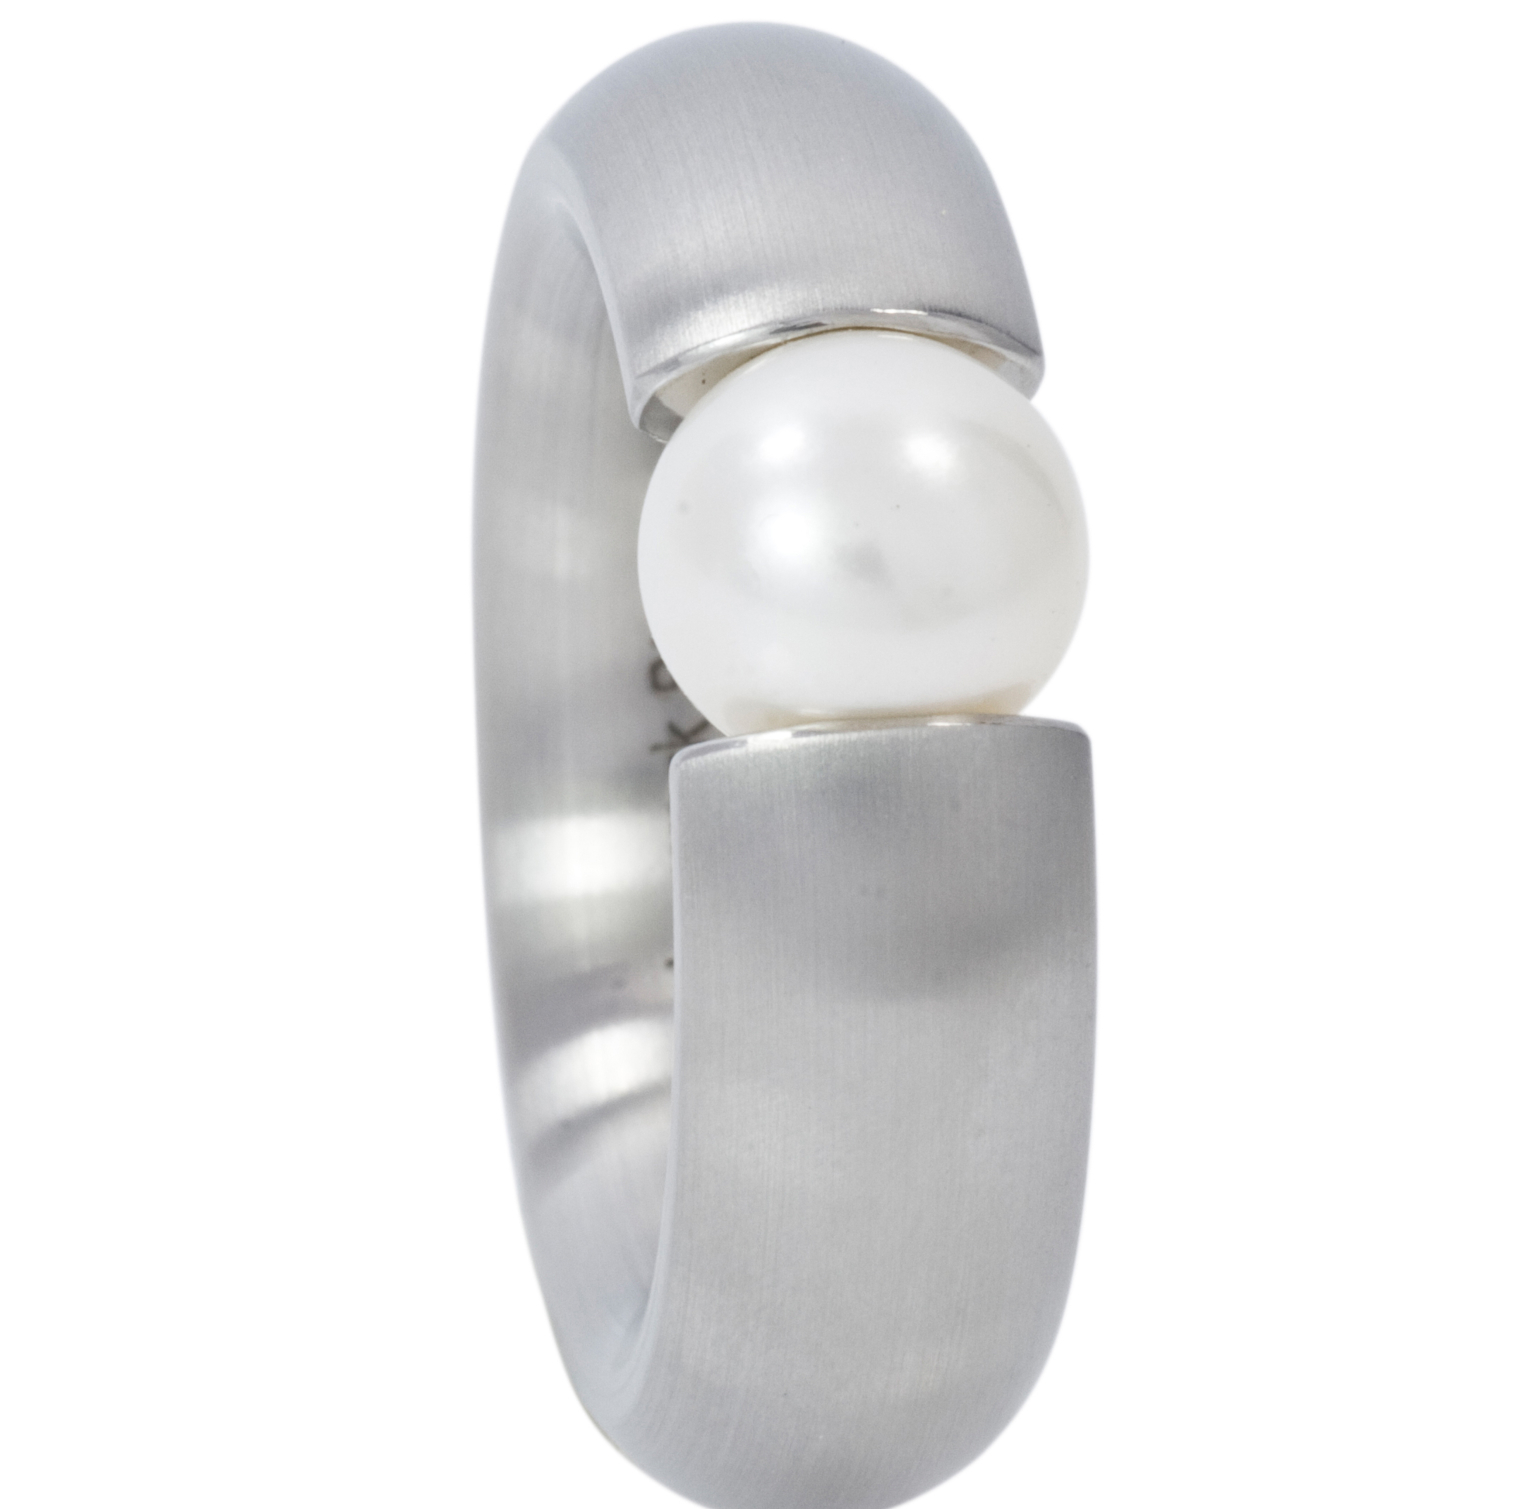 Staineless steel ring with white 7 mm round fresh water pearl